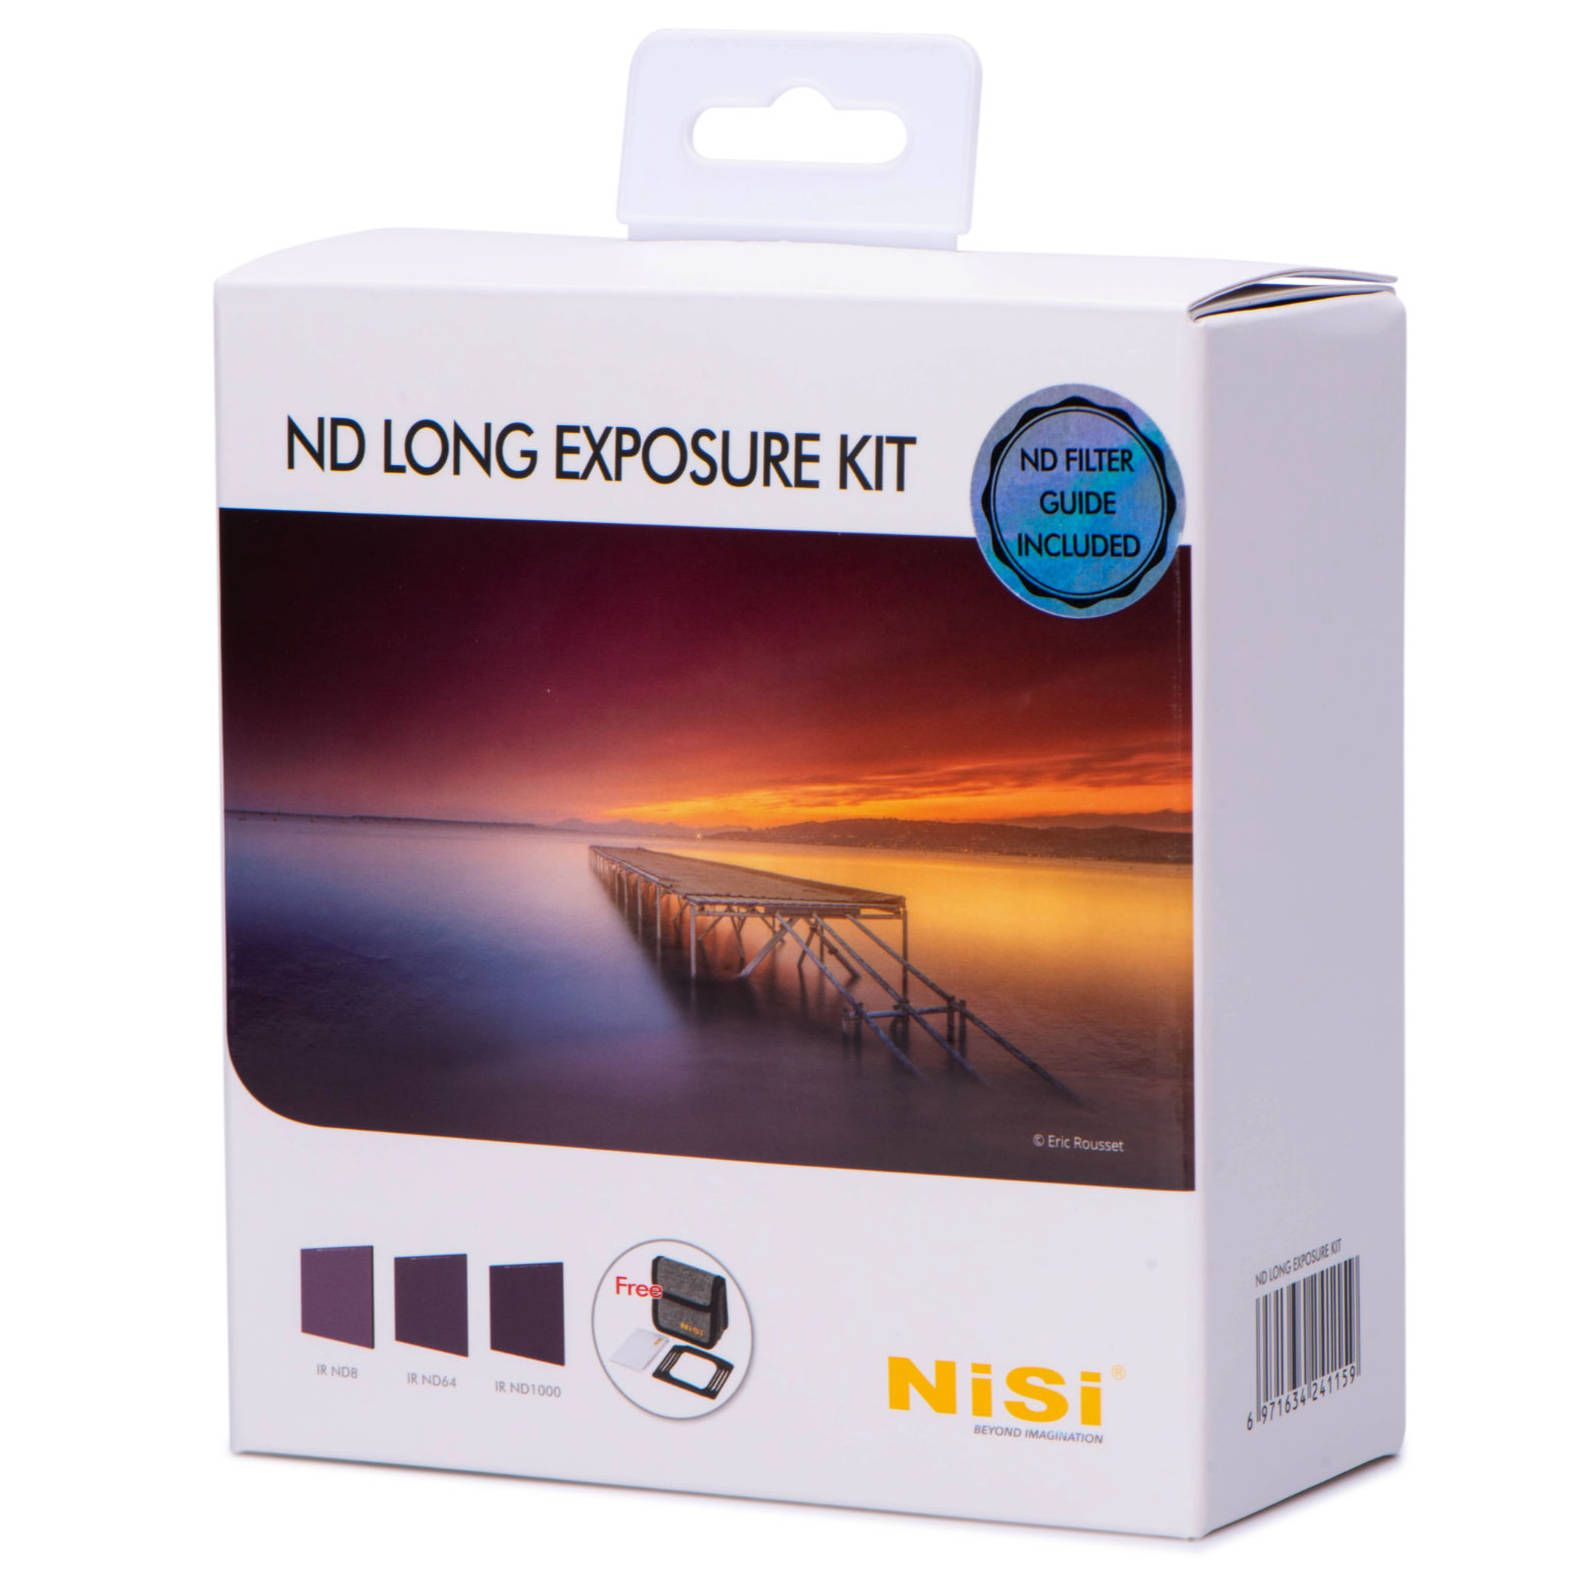 ND Long Exposure Kit 2 - kits filtros NiSi ND 100mm